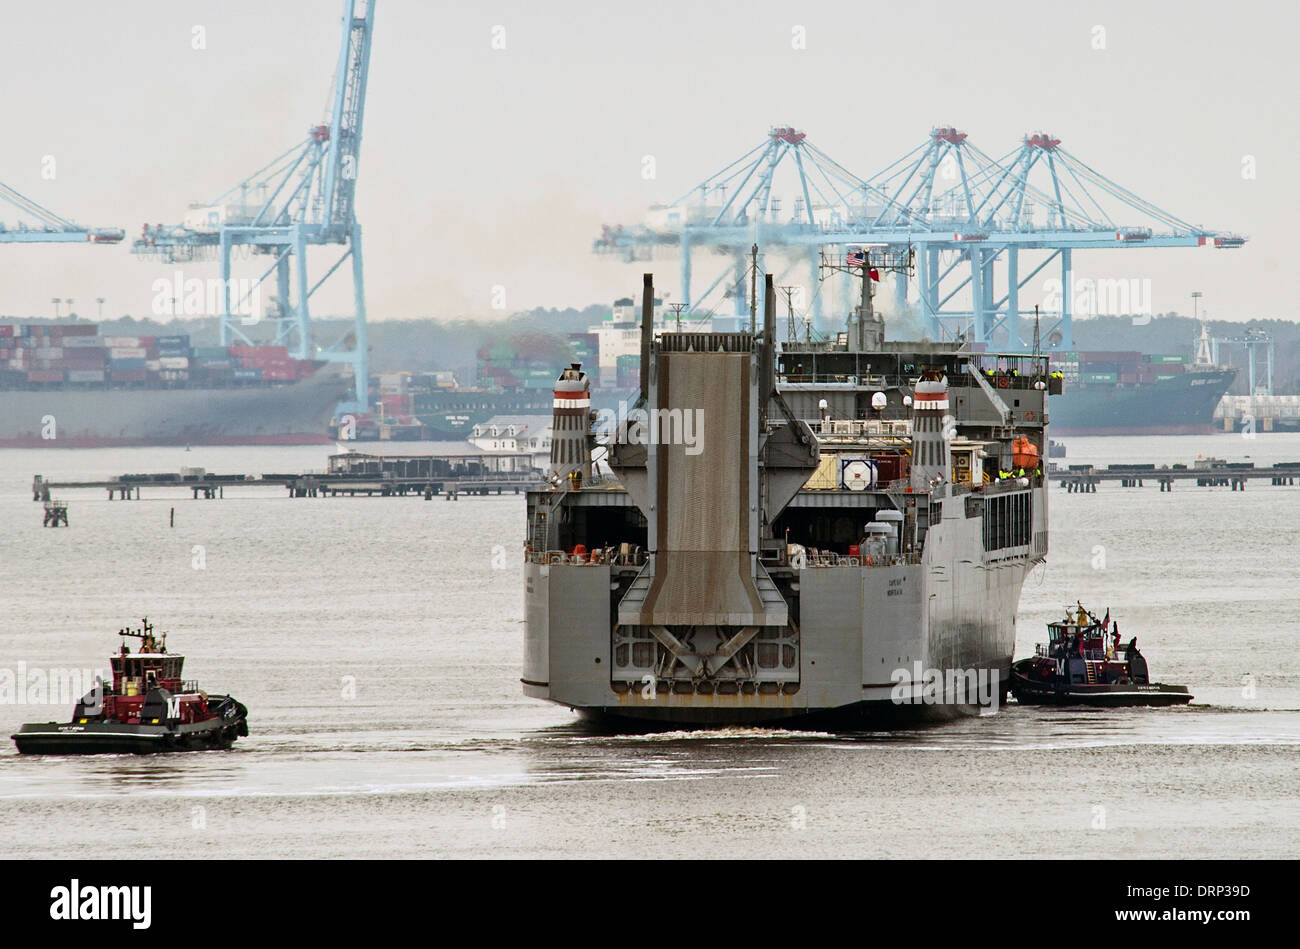 US Navy Ready Reserve Force vehicle transport ship Cape Ray pulls out of Norfolk Naval Shipyard on the way to Italy to begin processing Syrian chemical weapons January 10, 2014 in Portsmouth, Virginia. The Cape Ray has been fitted with equipment to destroy Syrian Chemical weapons at sea as part of a U.N. agreement. - Stock Image